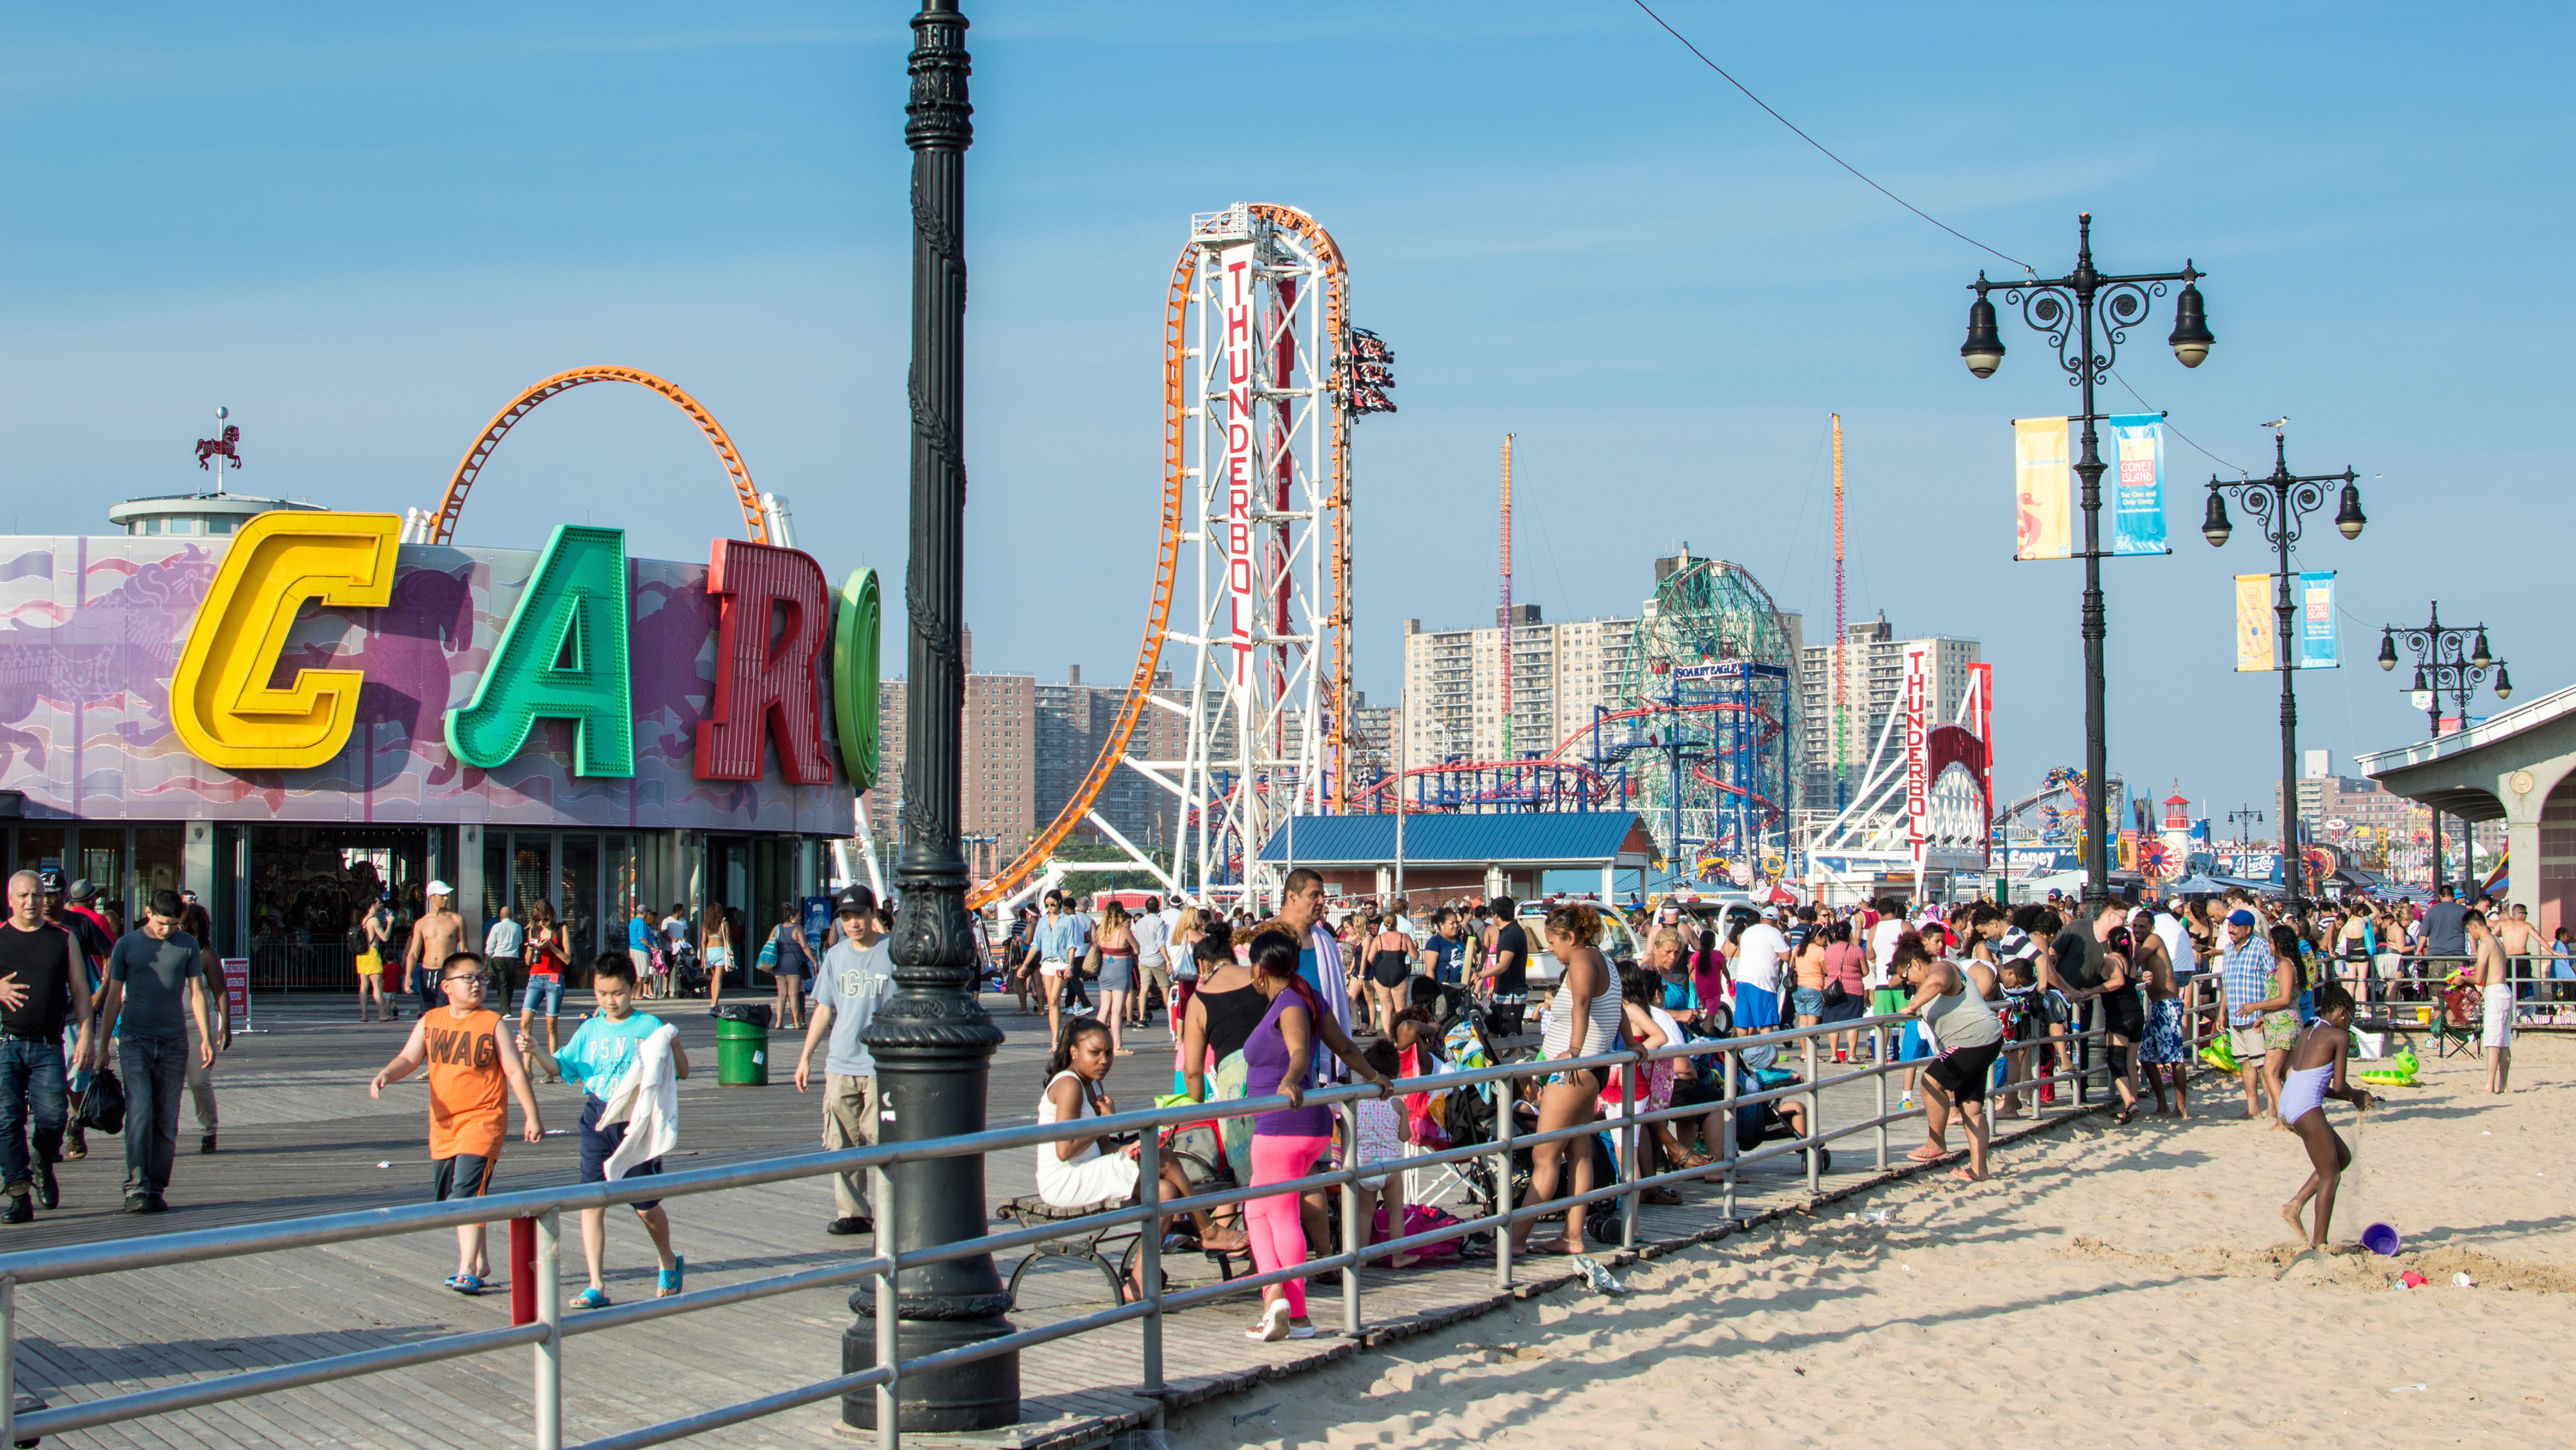 Coney Island's Luna Park opens for the season today